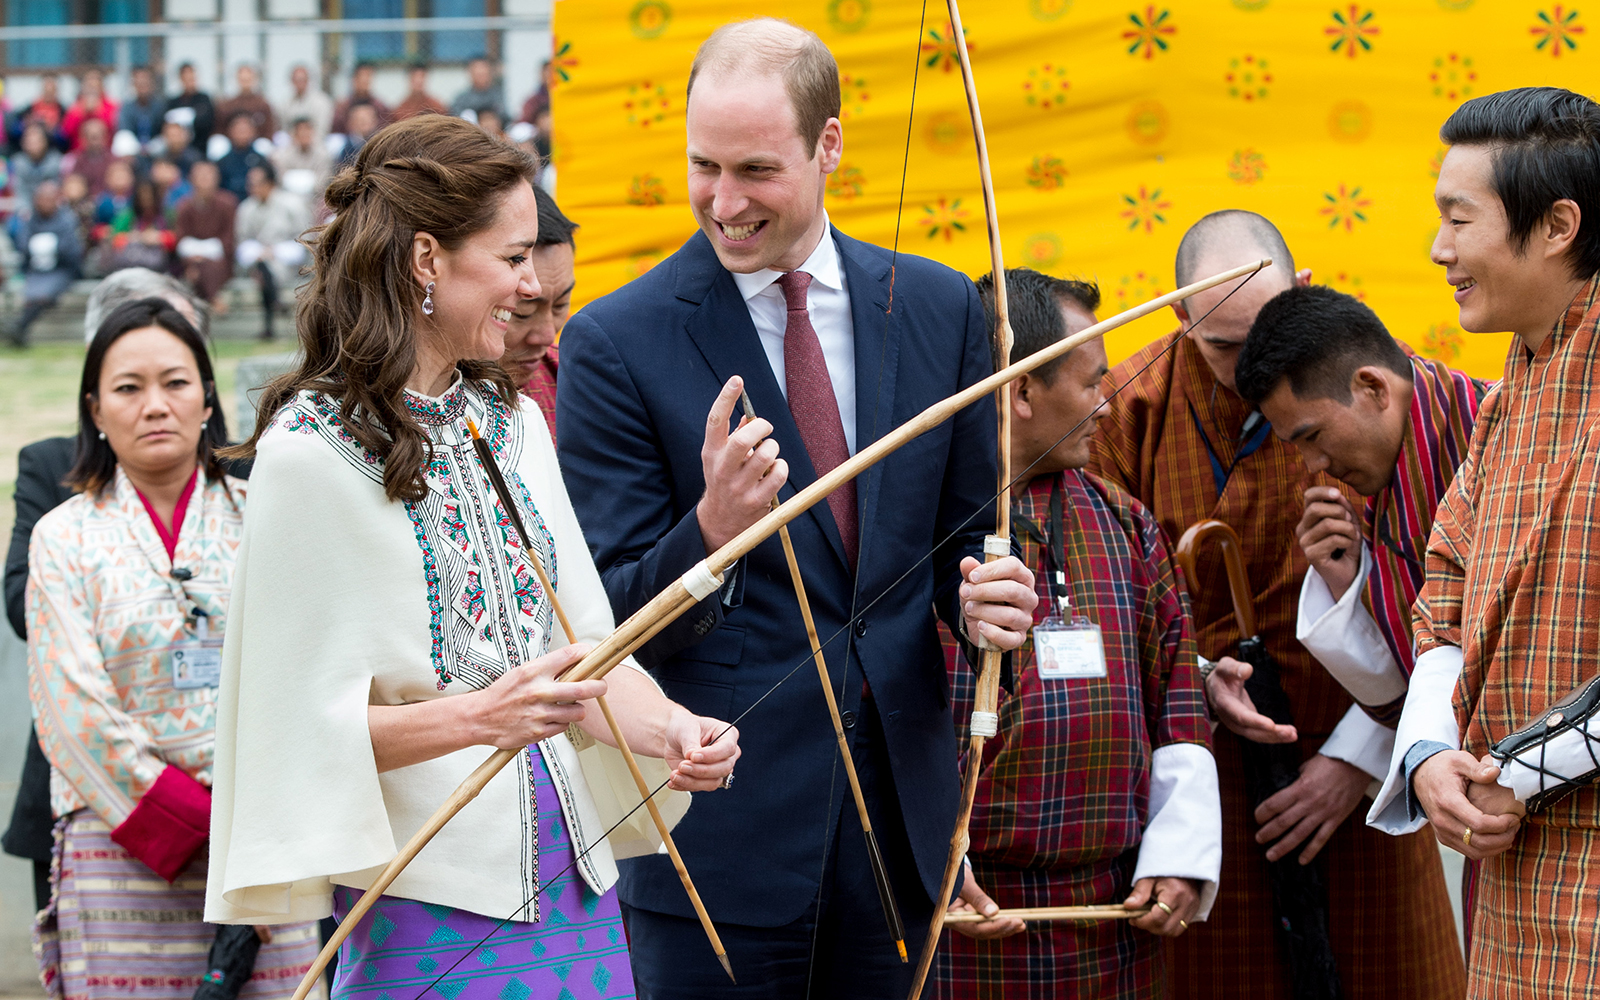 Prince William and Kate Middleton Embark on their Royal Tour of India and Bhutan: Attempting Archery